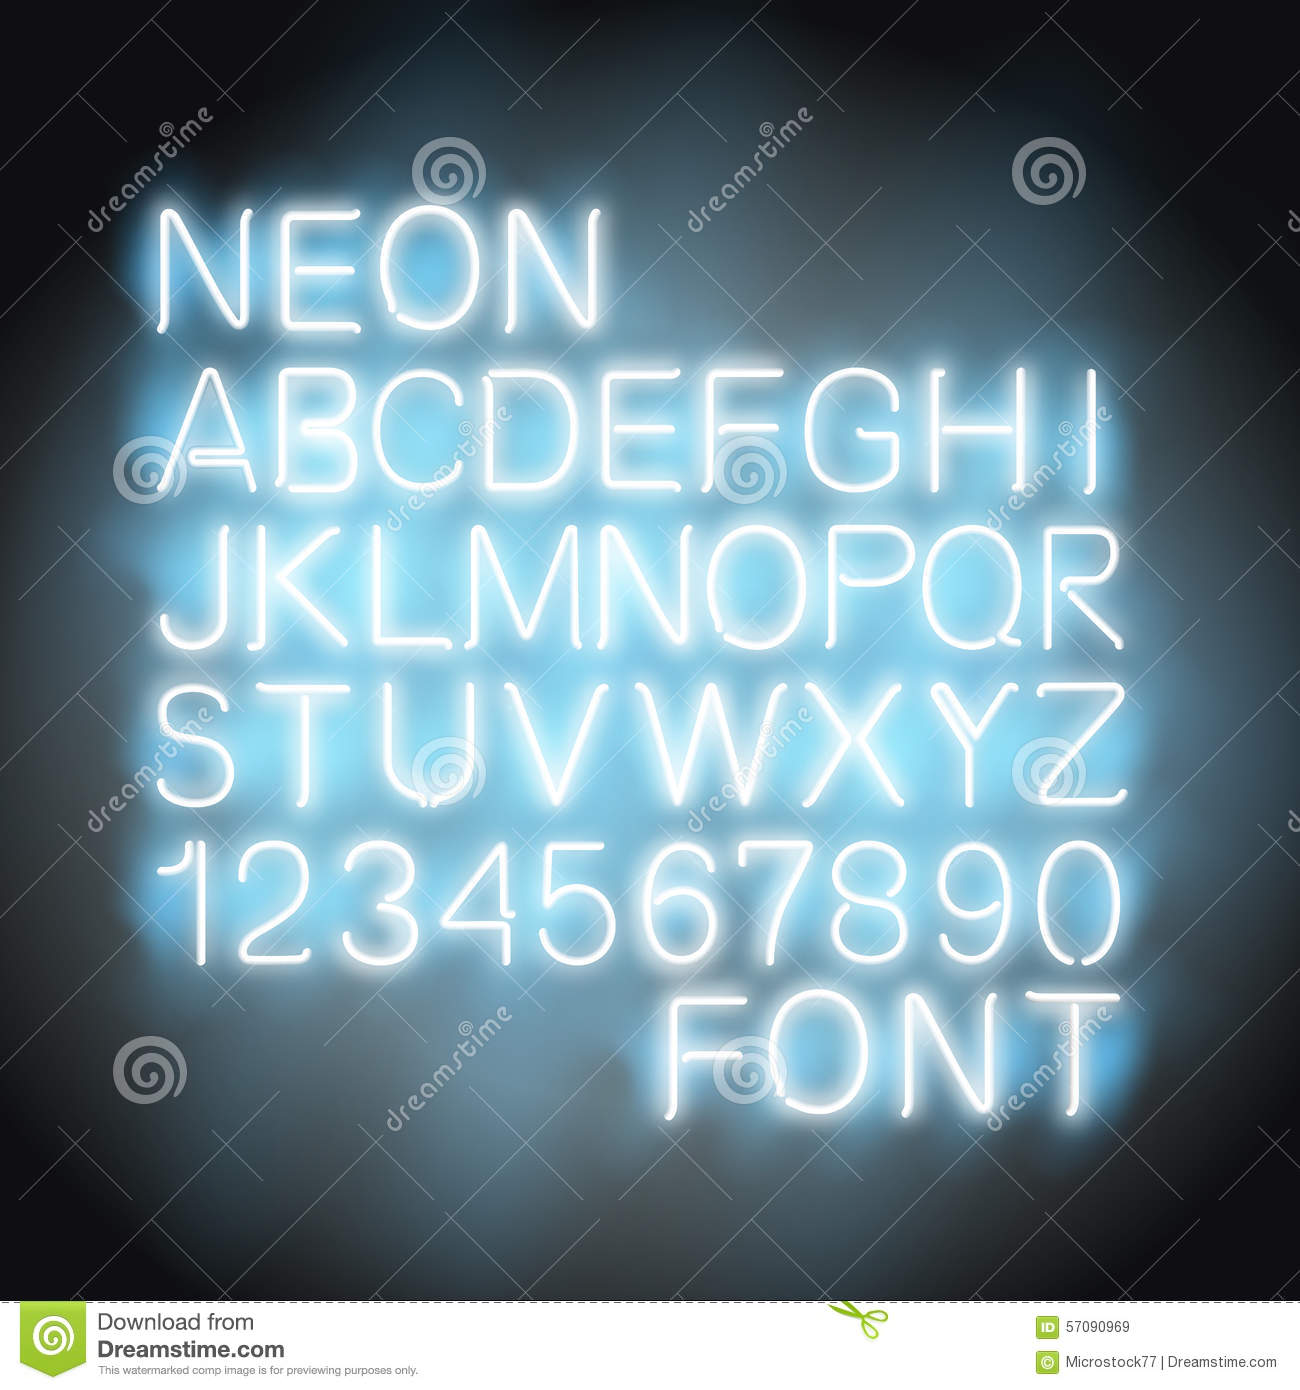 Neon Light Font Stock Vector Illustration Of Black Illuminated